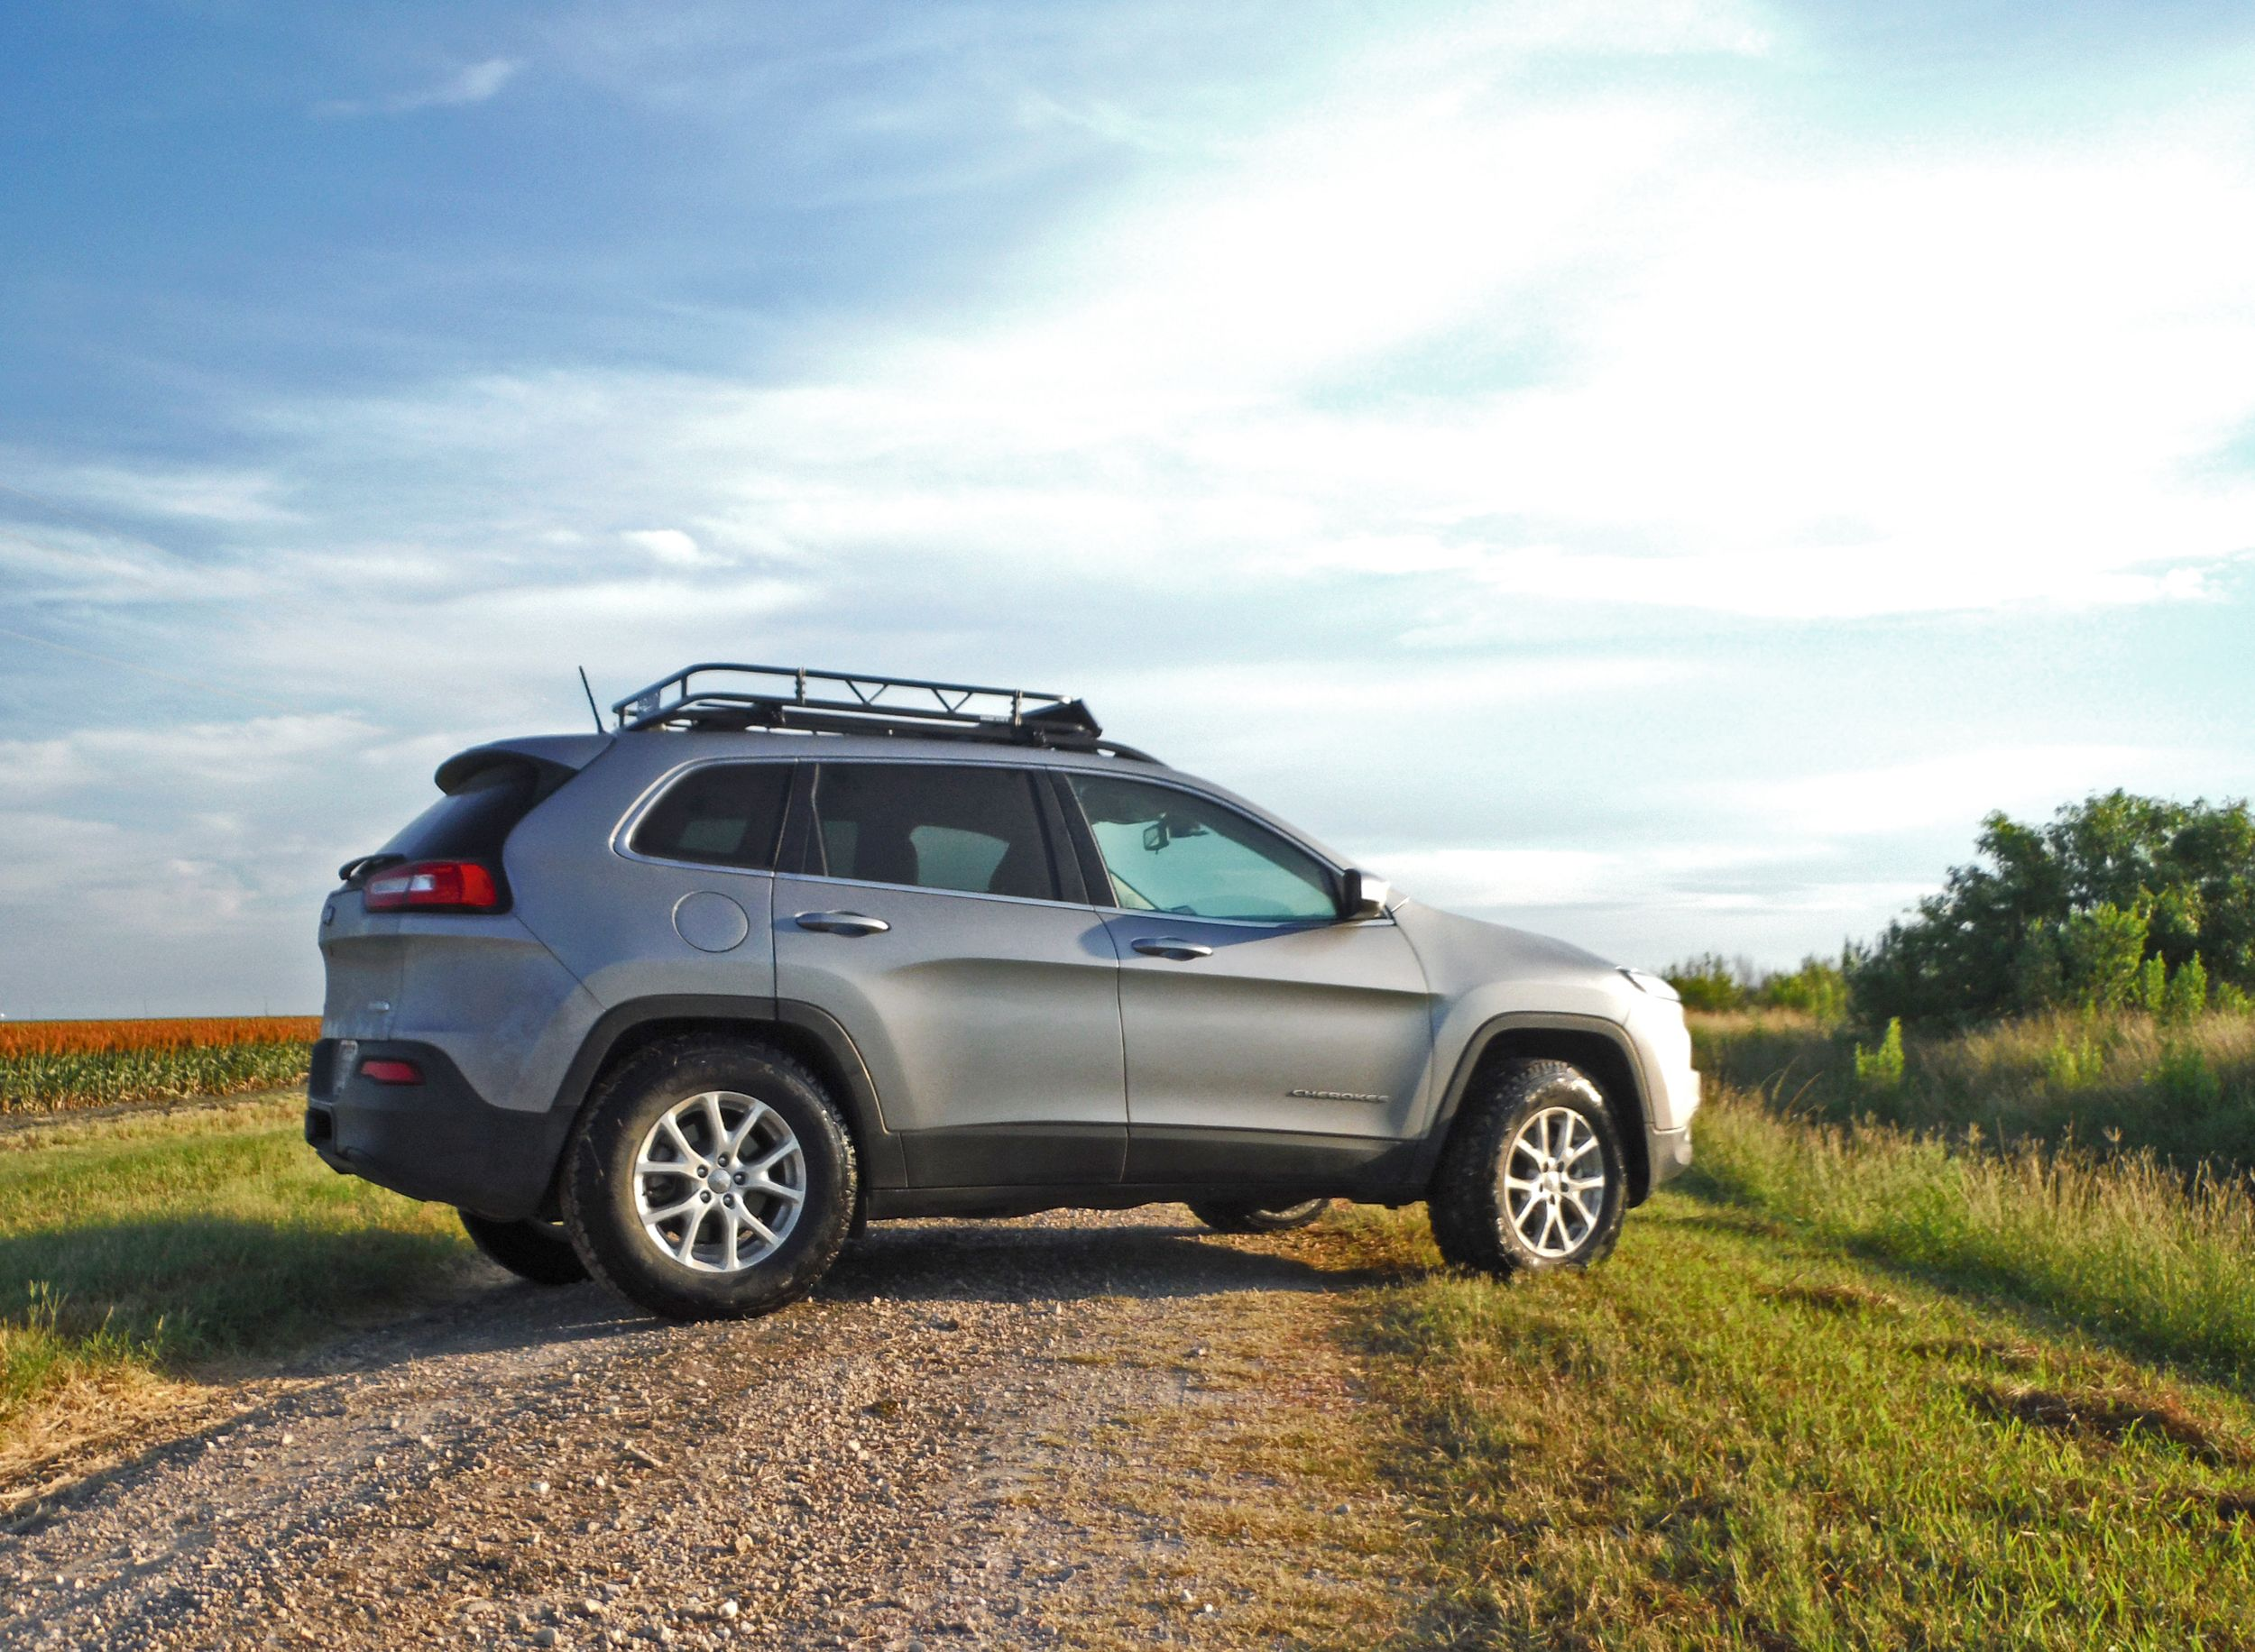 Lifted Jeep Cherokee Latitude 4x4 Kl Ad1 30 5 Tires Garvin